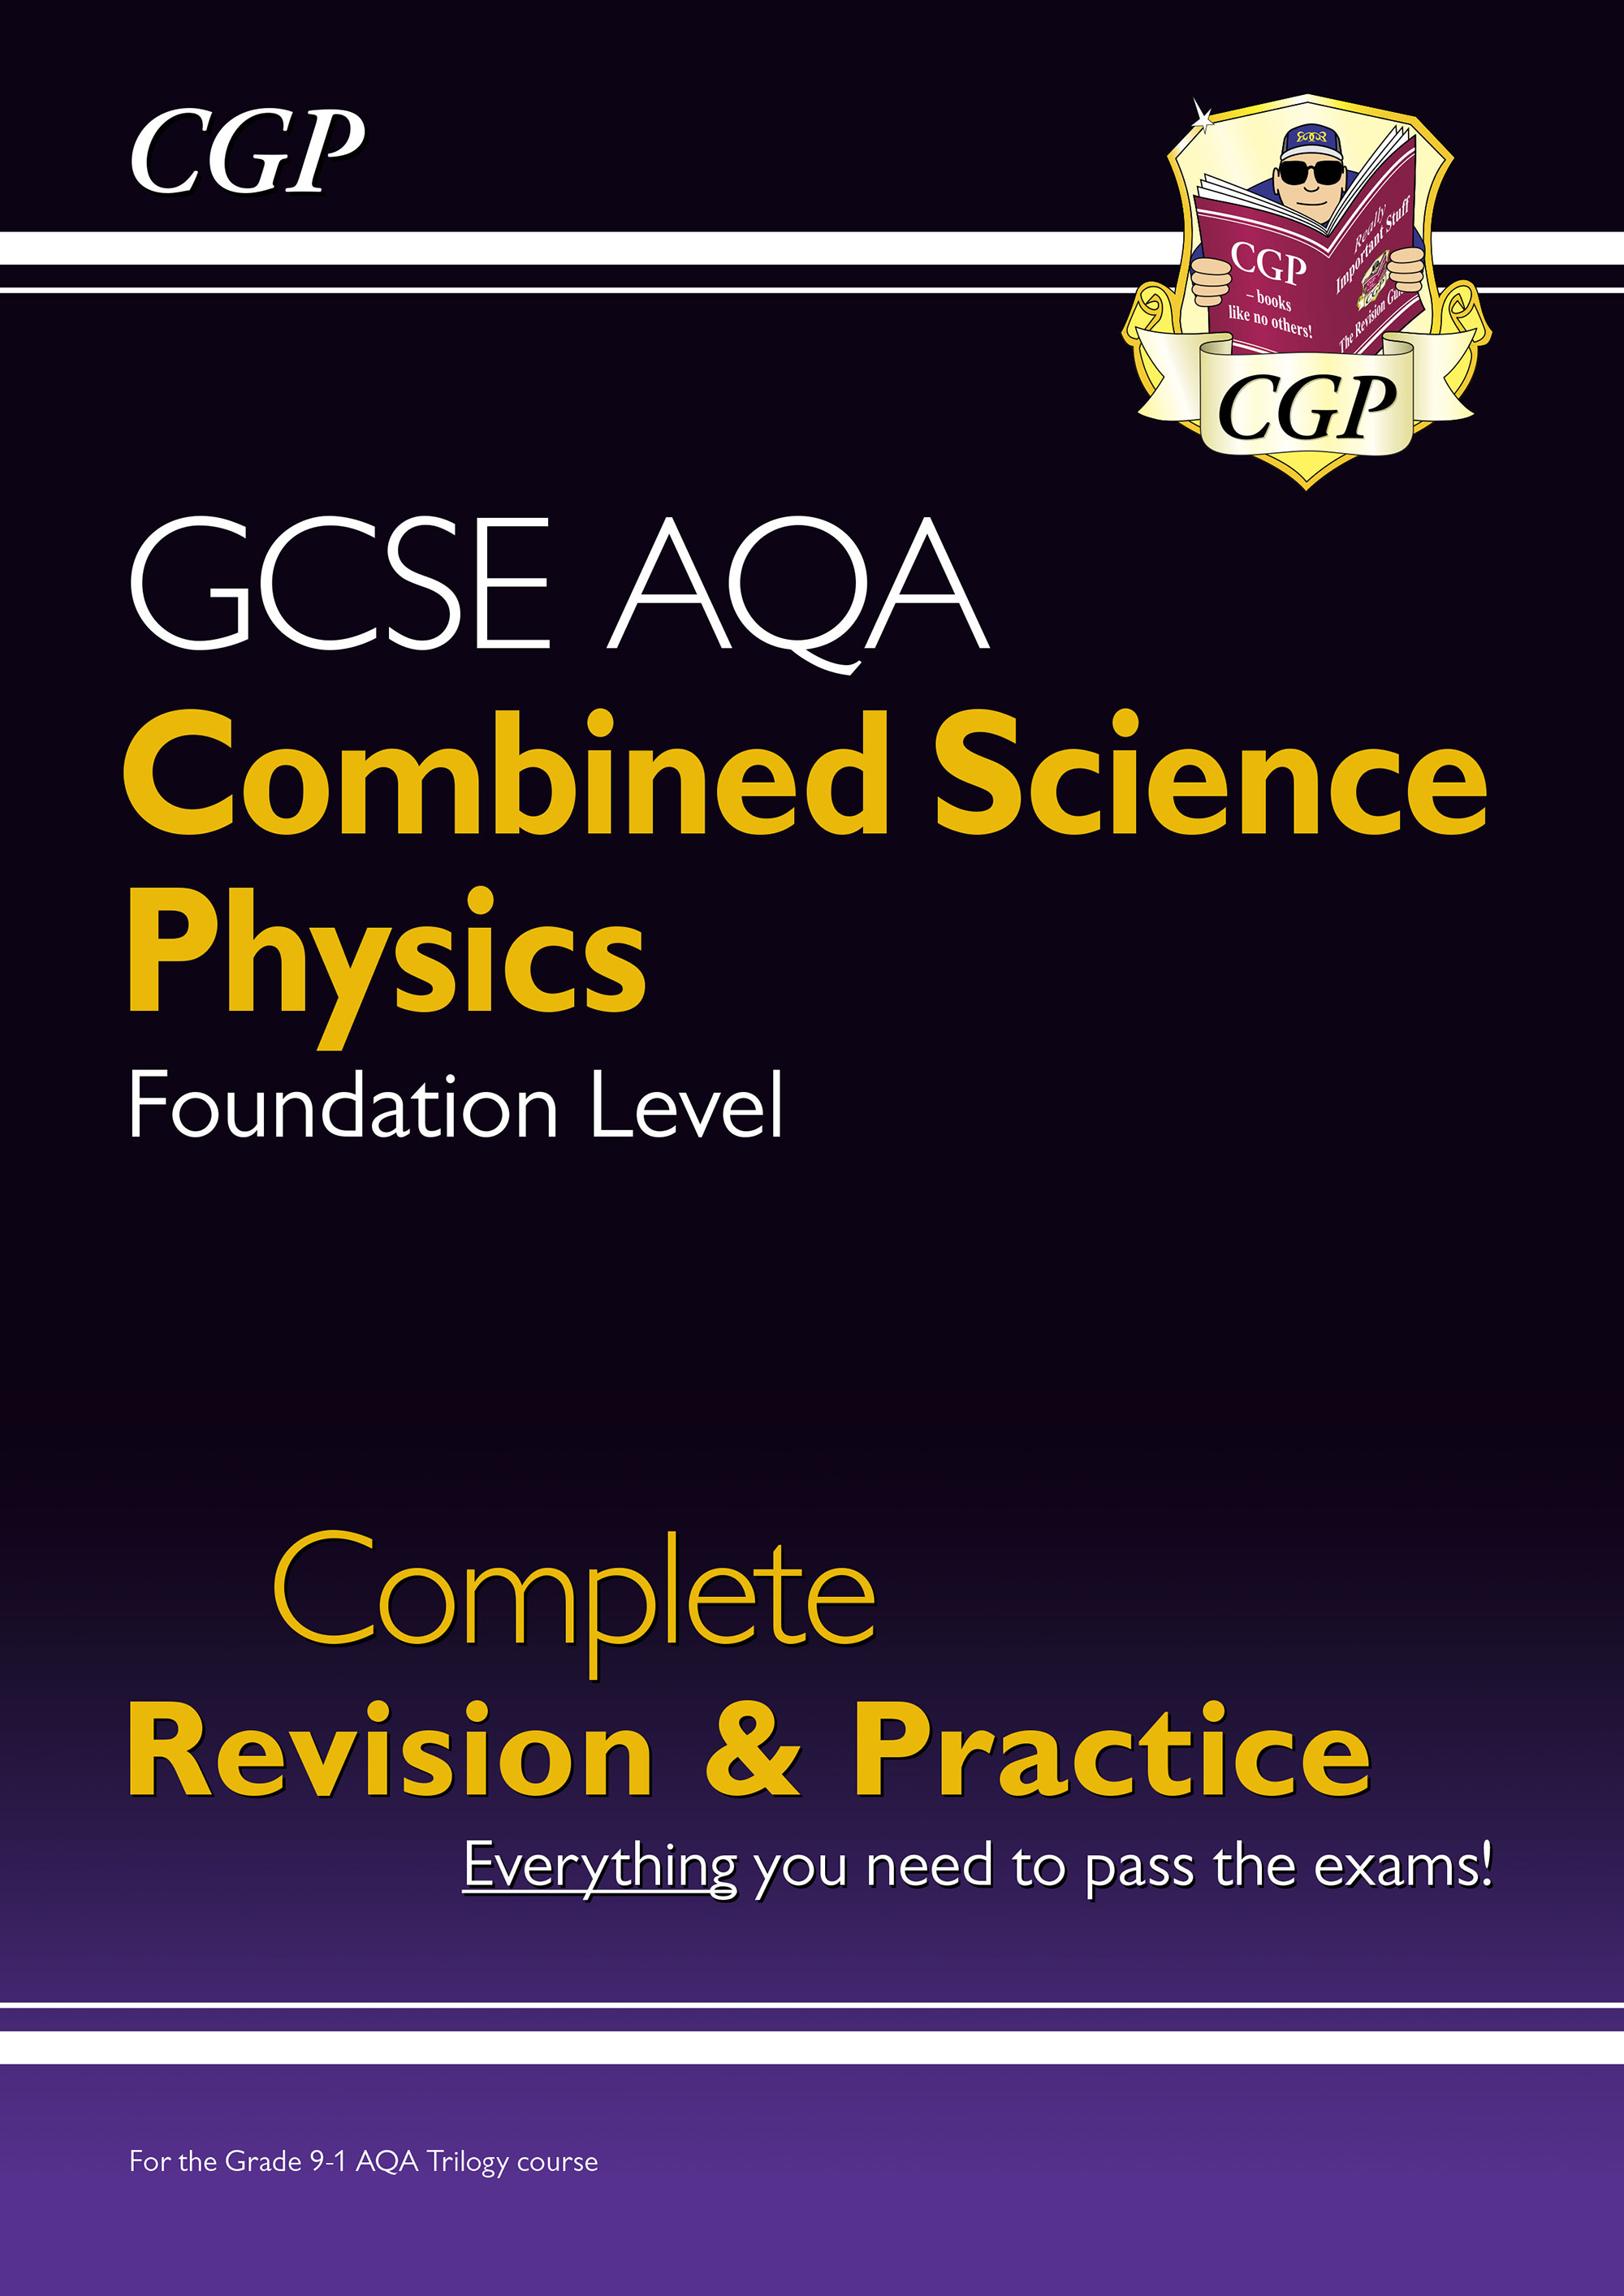 SCPAFS41D - New 9-1 GCSE Combined Science: Physics AQA Foundation Complete Revision & Practice Onlin